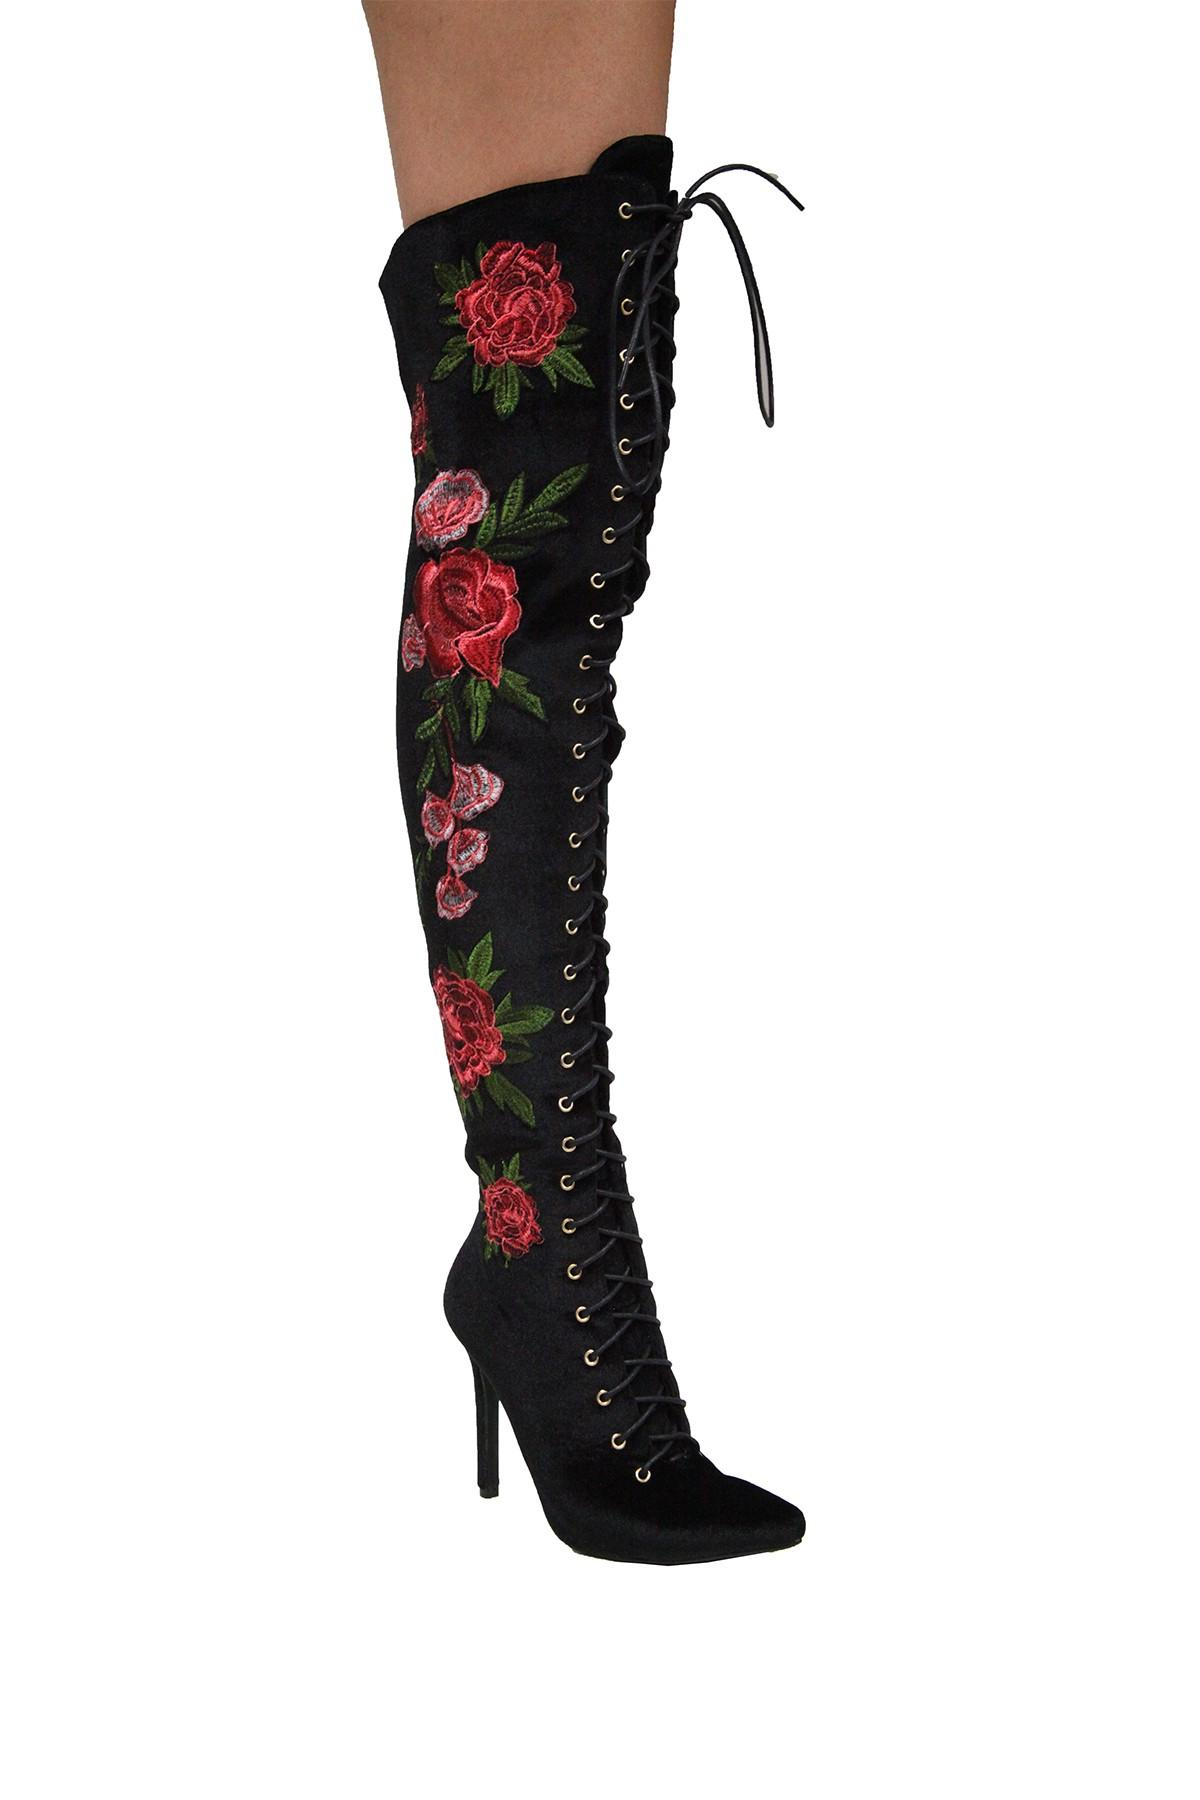 9dcc68a8008 Cape Robbin Mini Embroidered Over The Knee Boot in Black - Lyst